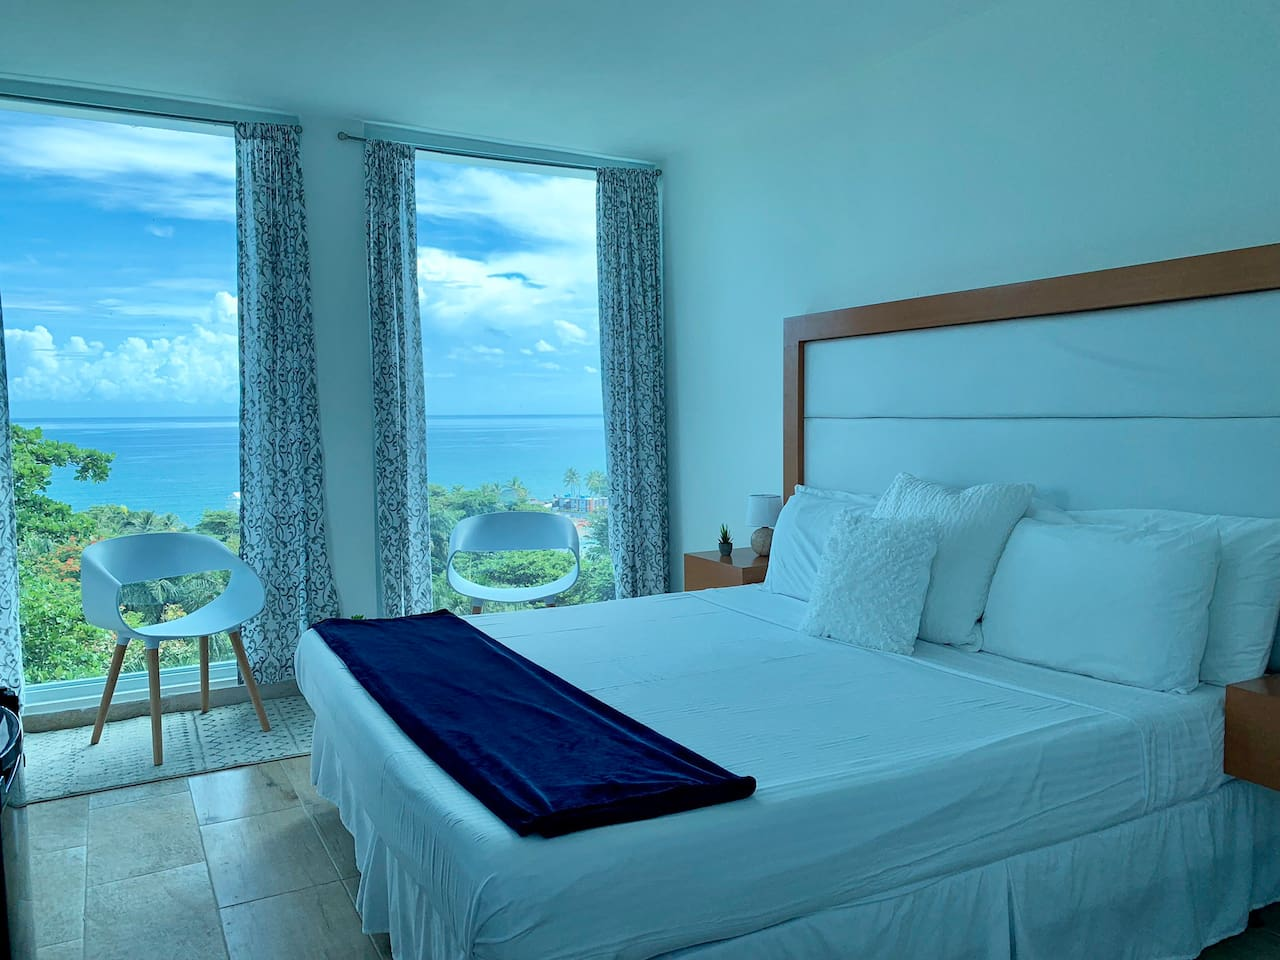 Beautiful Ocean View Room with King sized bed